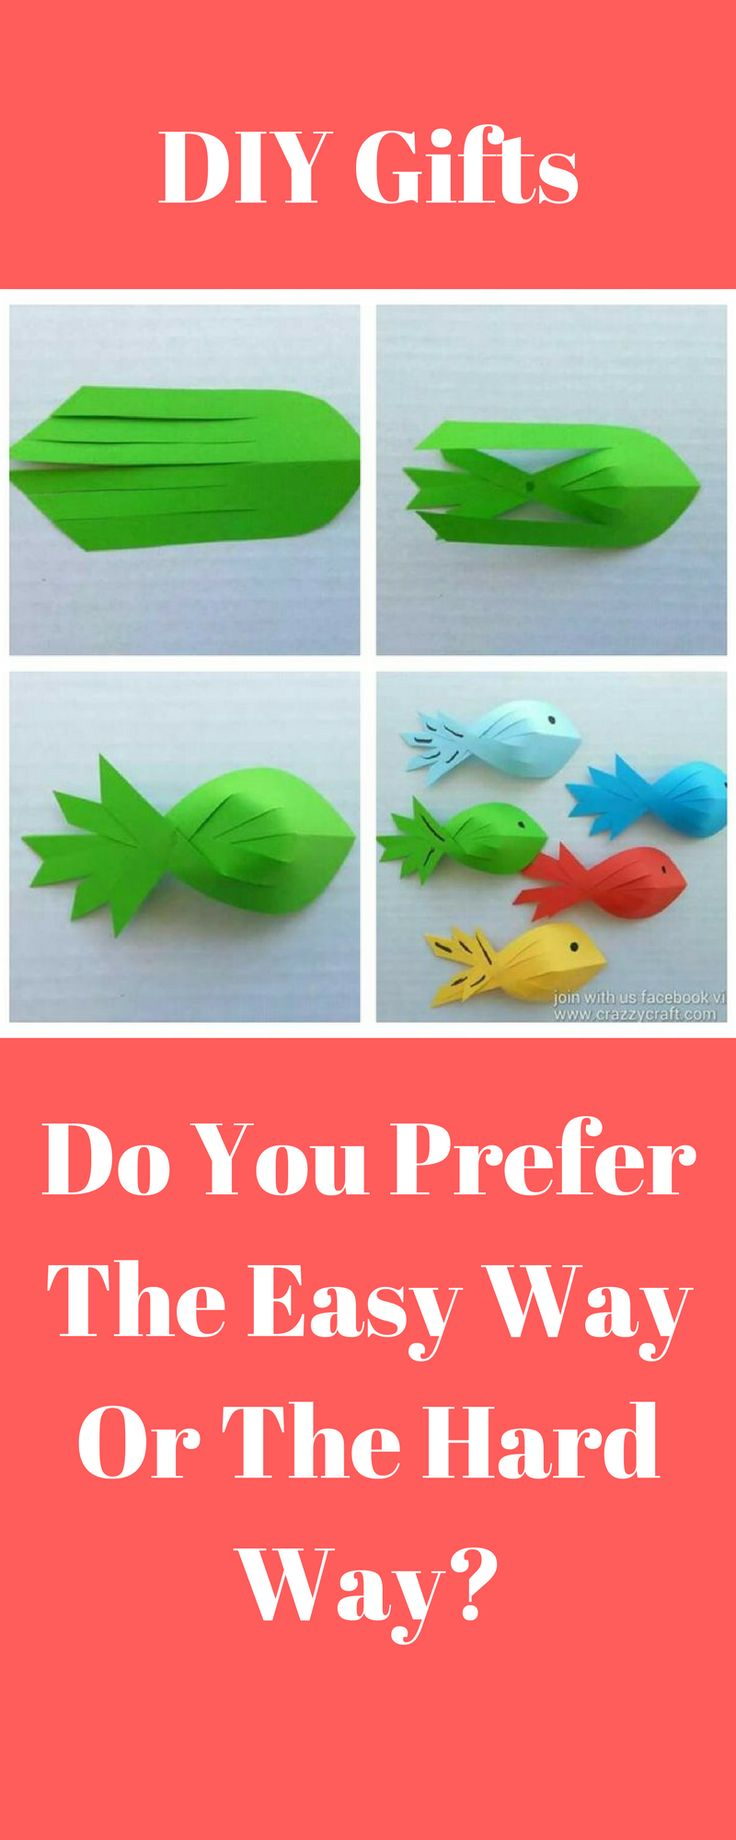 DIY Gifts - Do You Prefer The Easy Way Or The Hard Way? Beautiful Gifts to Make Relationship Stronge  ideas gifts for her gifts for her romantic gifts diy ideas